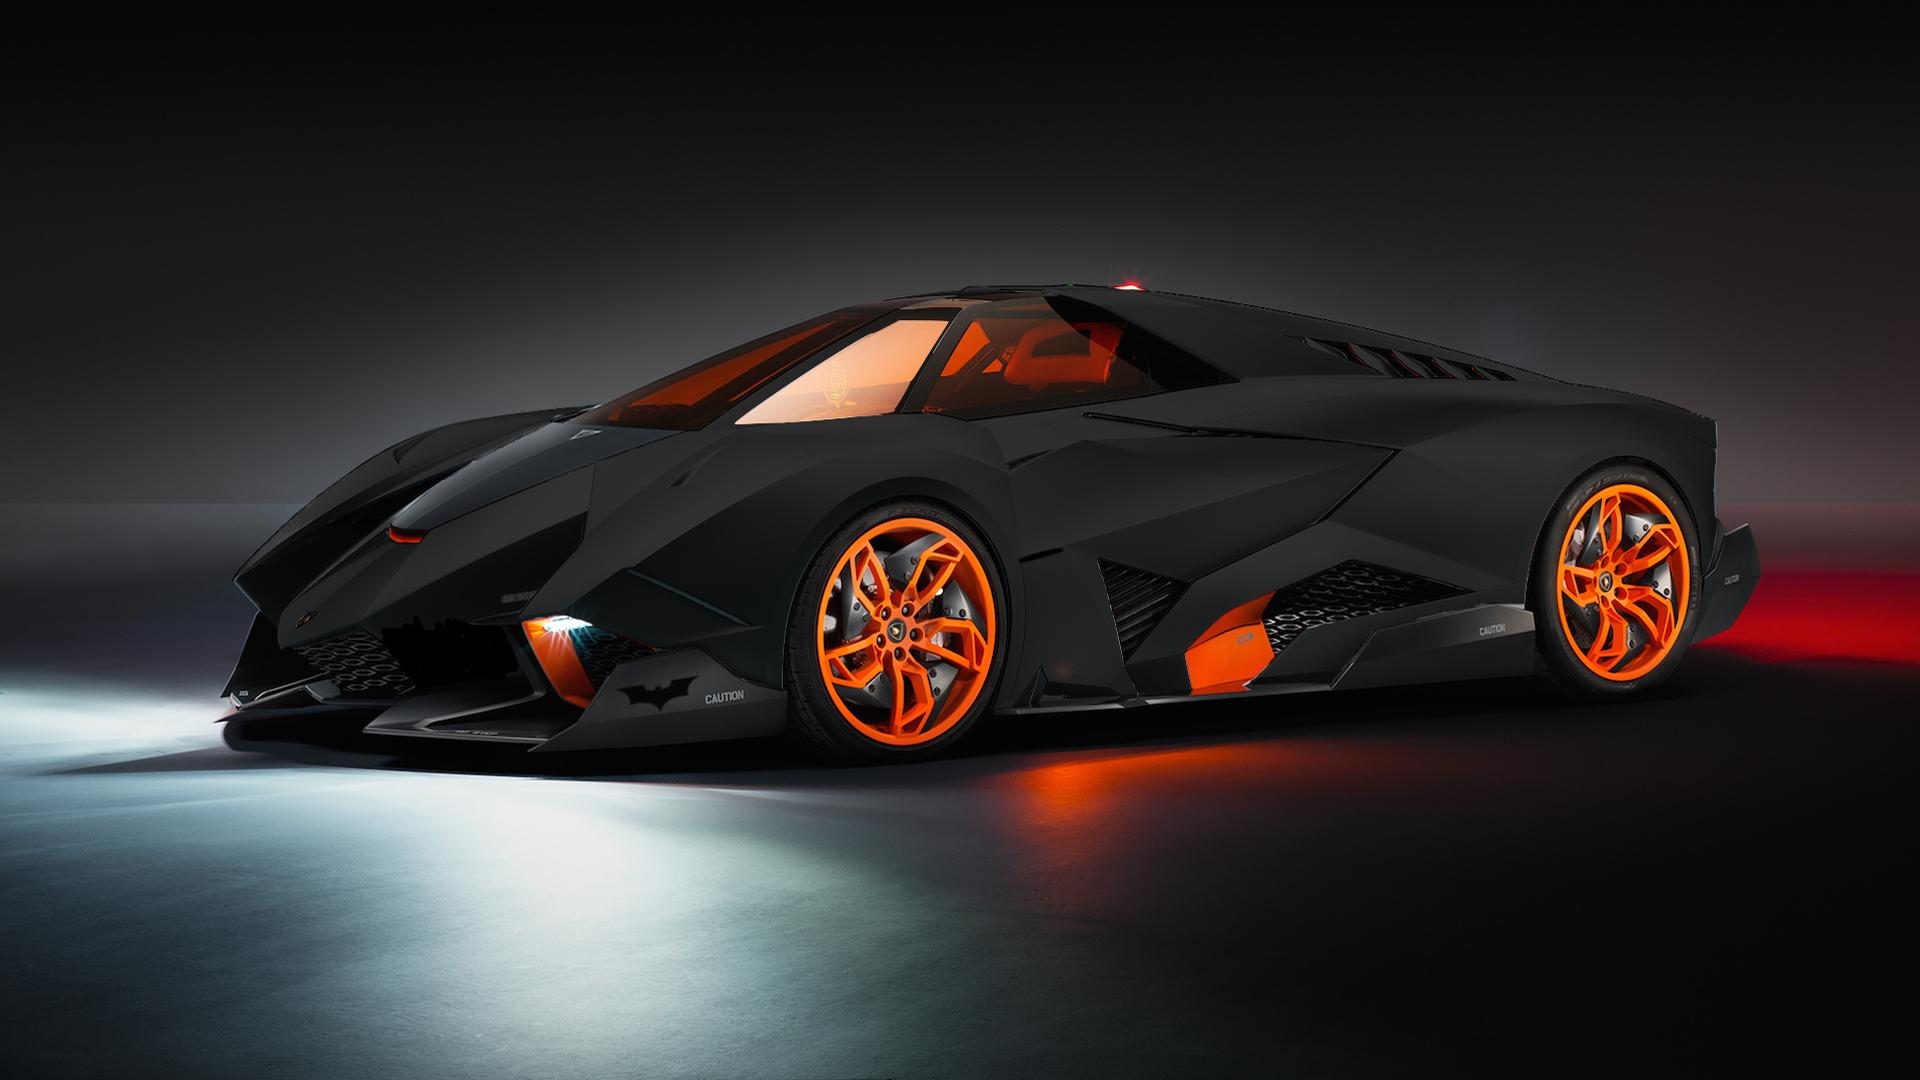 Lamborghini Egoista Batmobile Edition Photo Specs